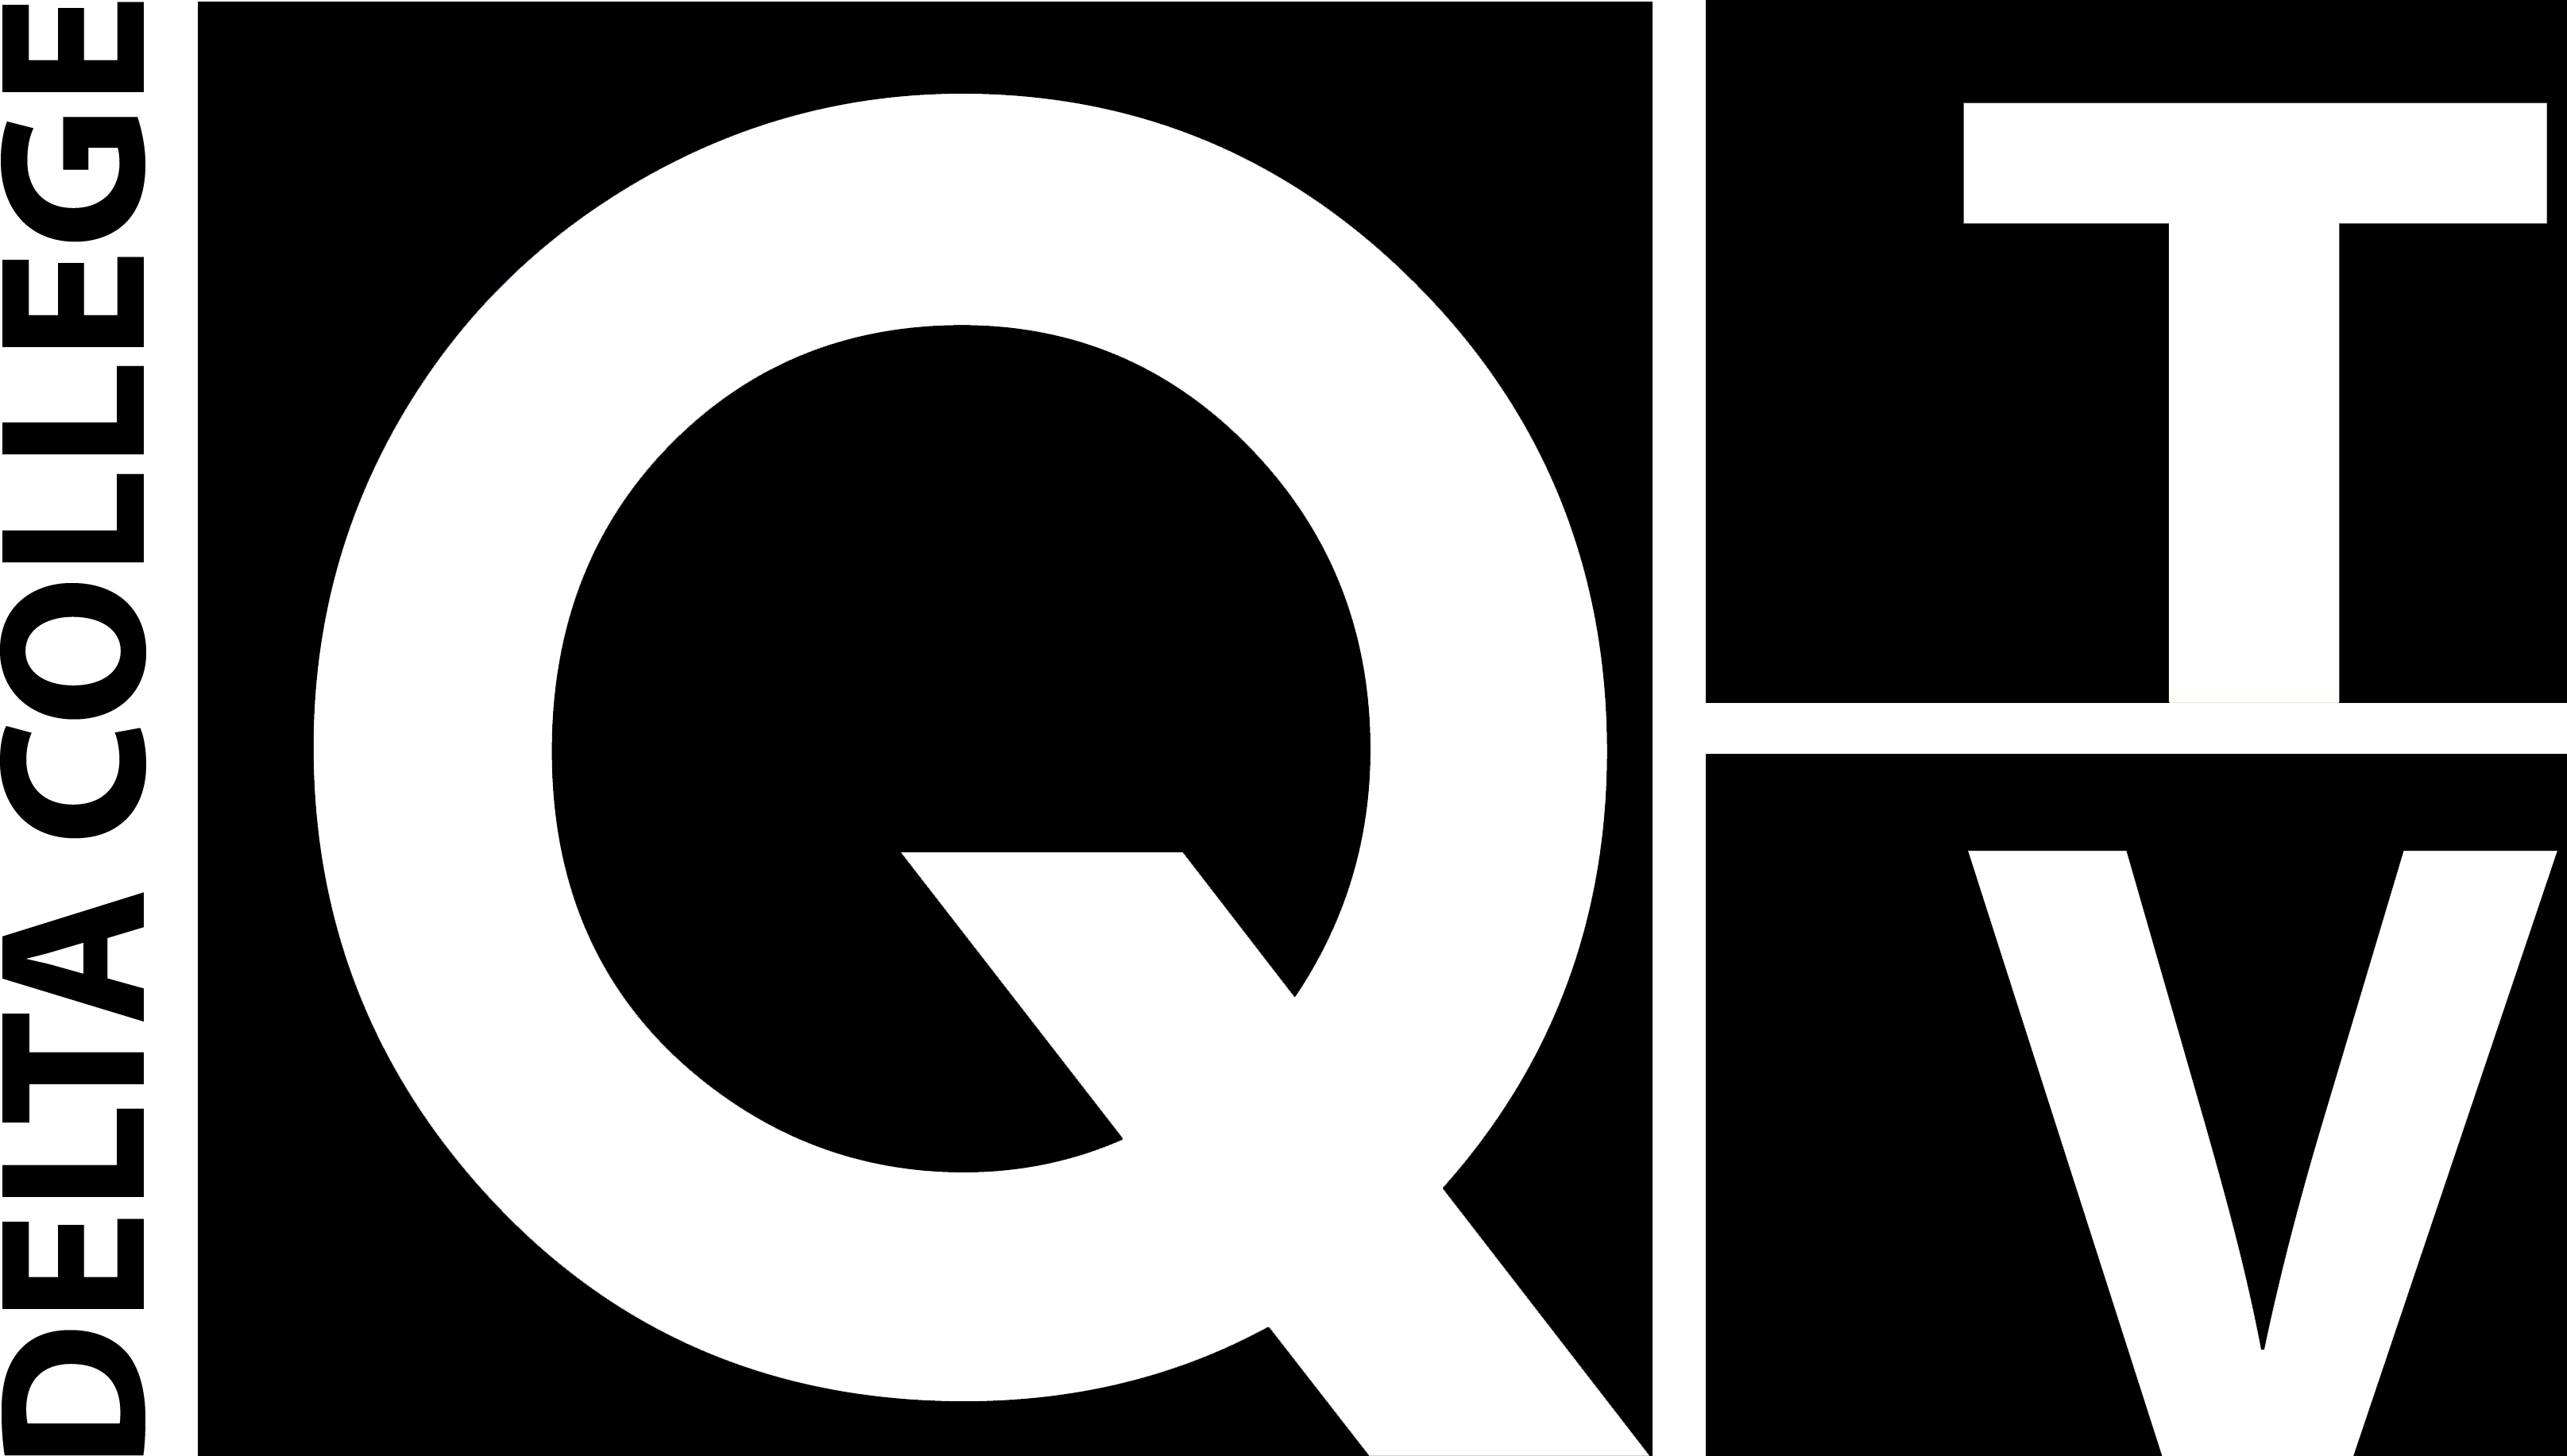 Q-TV Logo in Black